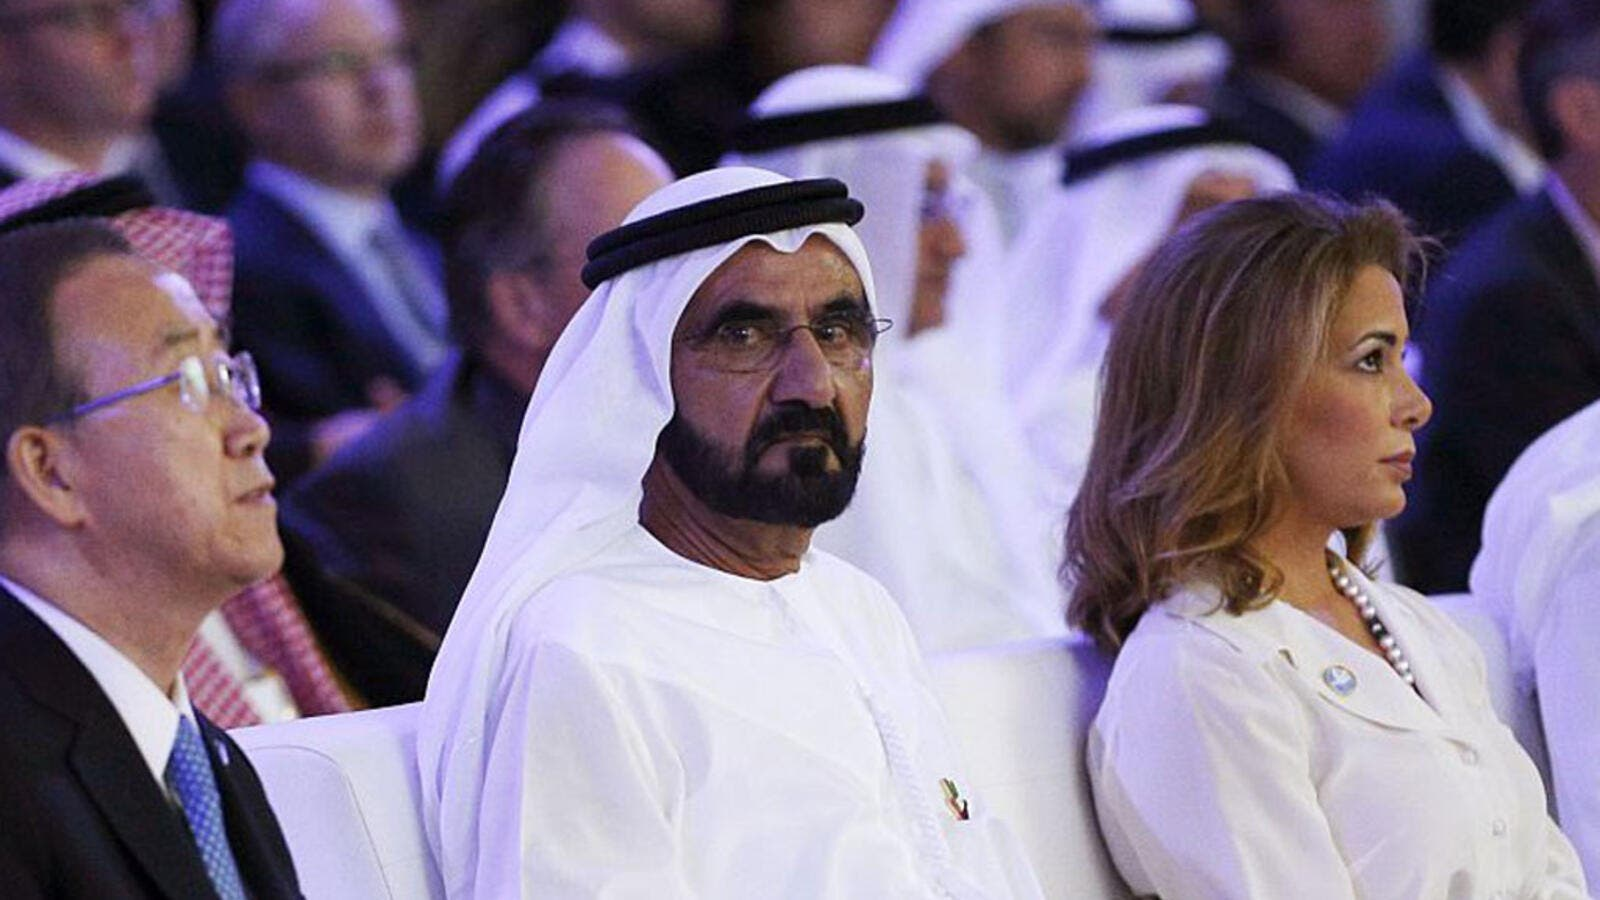 Ruler of Dubai Sheik Mohammed bin Rashid and his wife Princess Haya (AFP/FilePhoto)